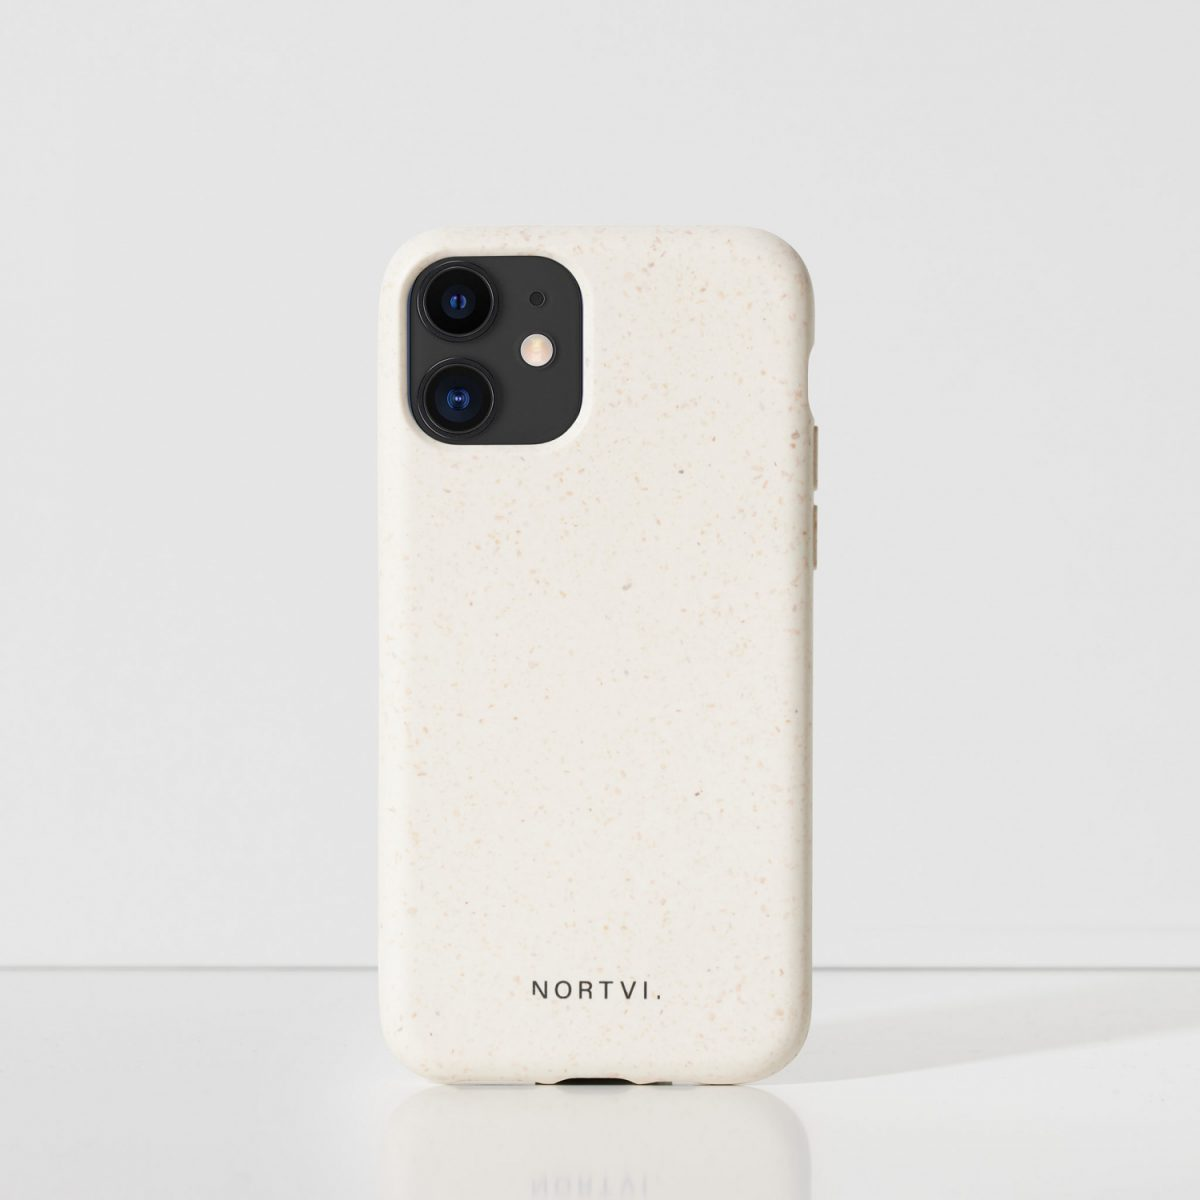 NORTVI white phone case for iPhone 11 case